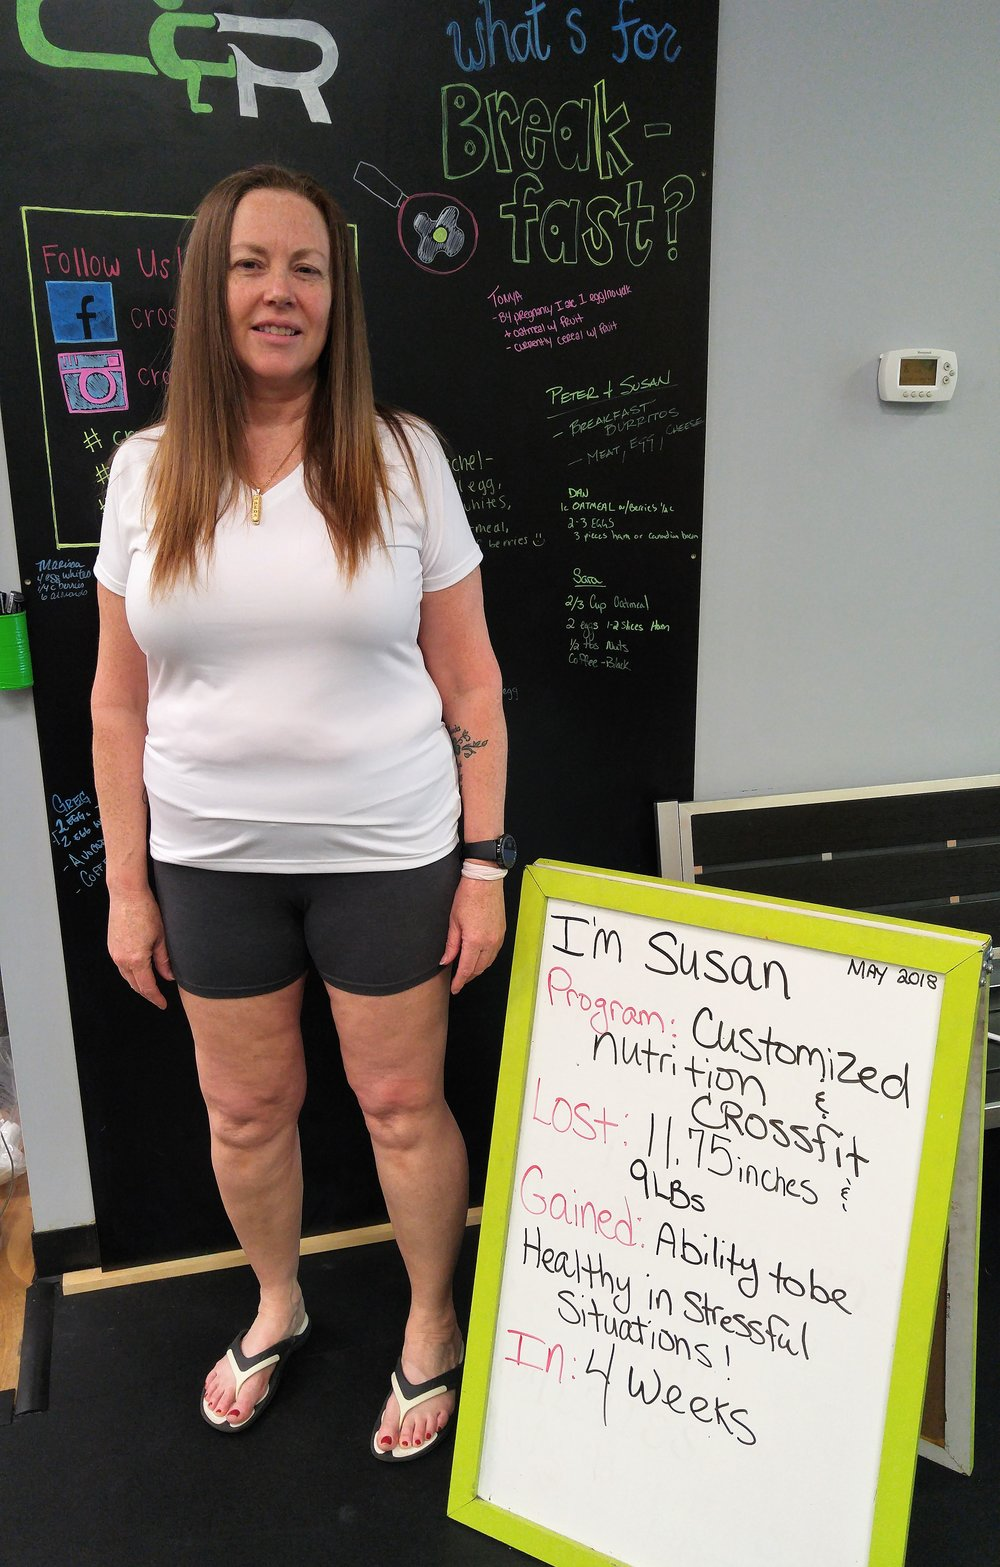 Susan's Nutrition Story